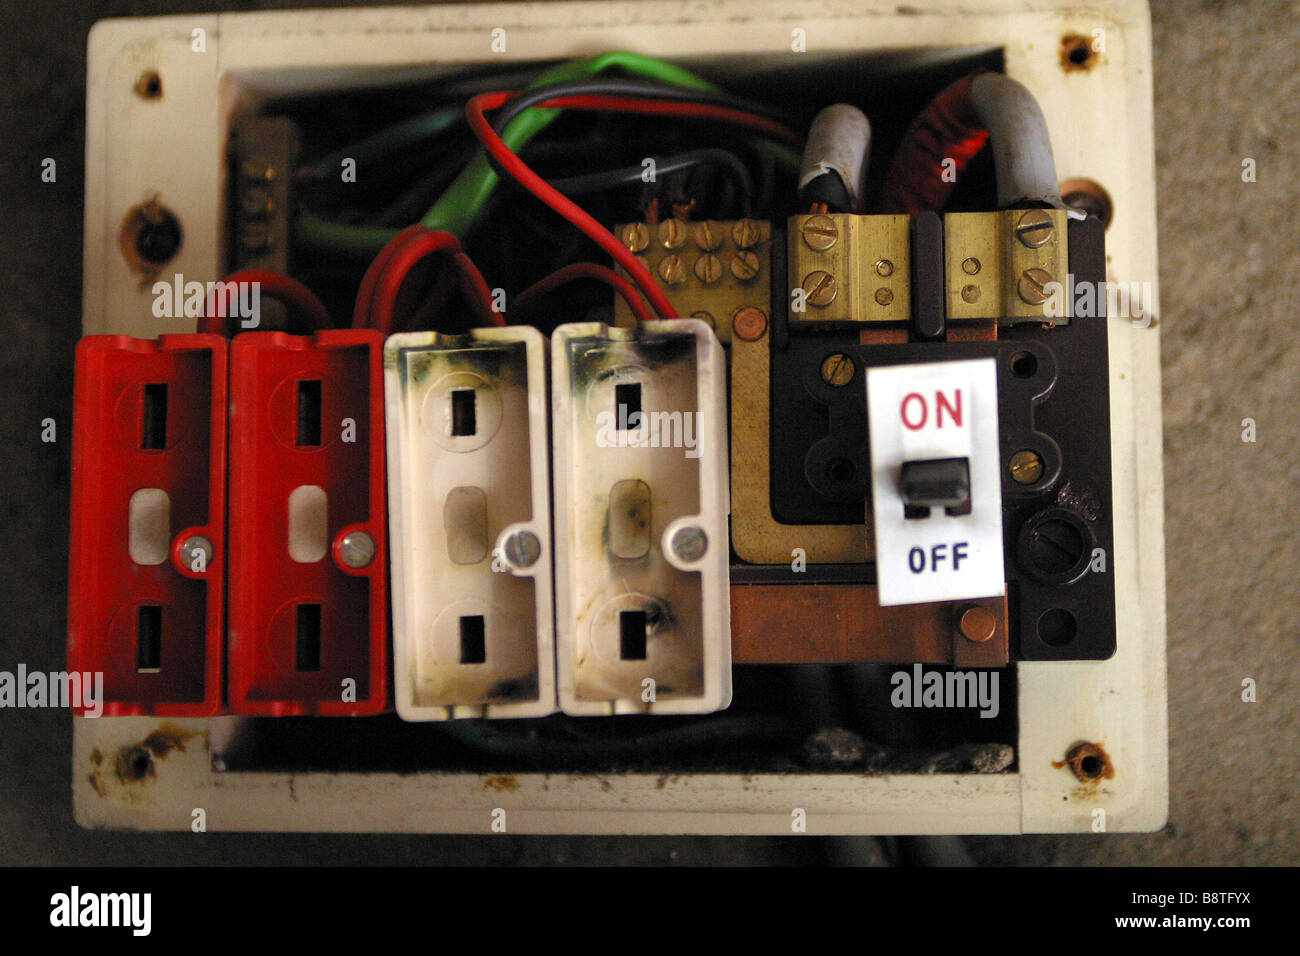 old electrical fuse box stock photos old electrical fuse box stock rh alamy com old fashioned fuse box uk old style fuse box tripped